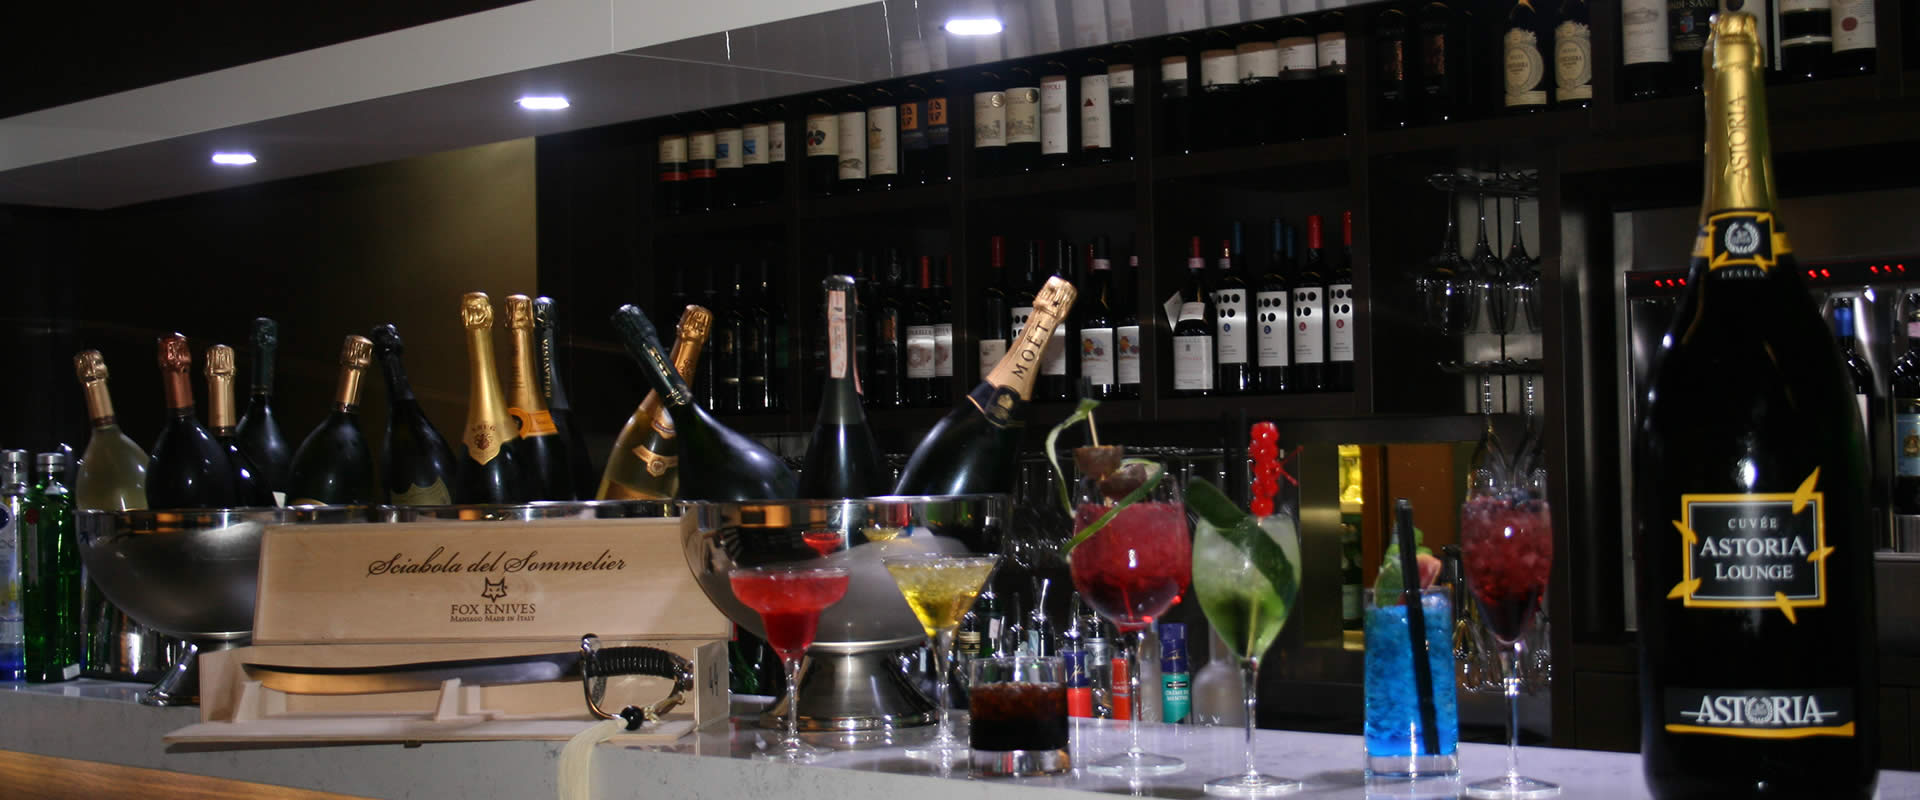 Bar Giuliani Como -  Wine bar, live music, ristorante e american bar